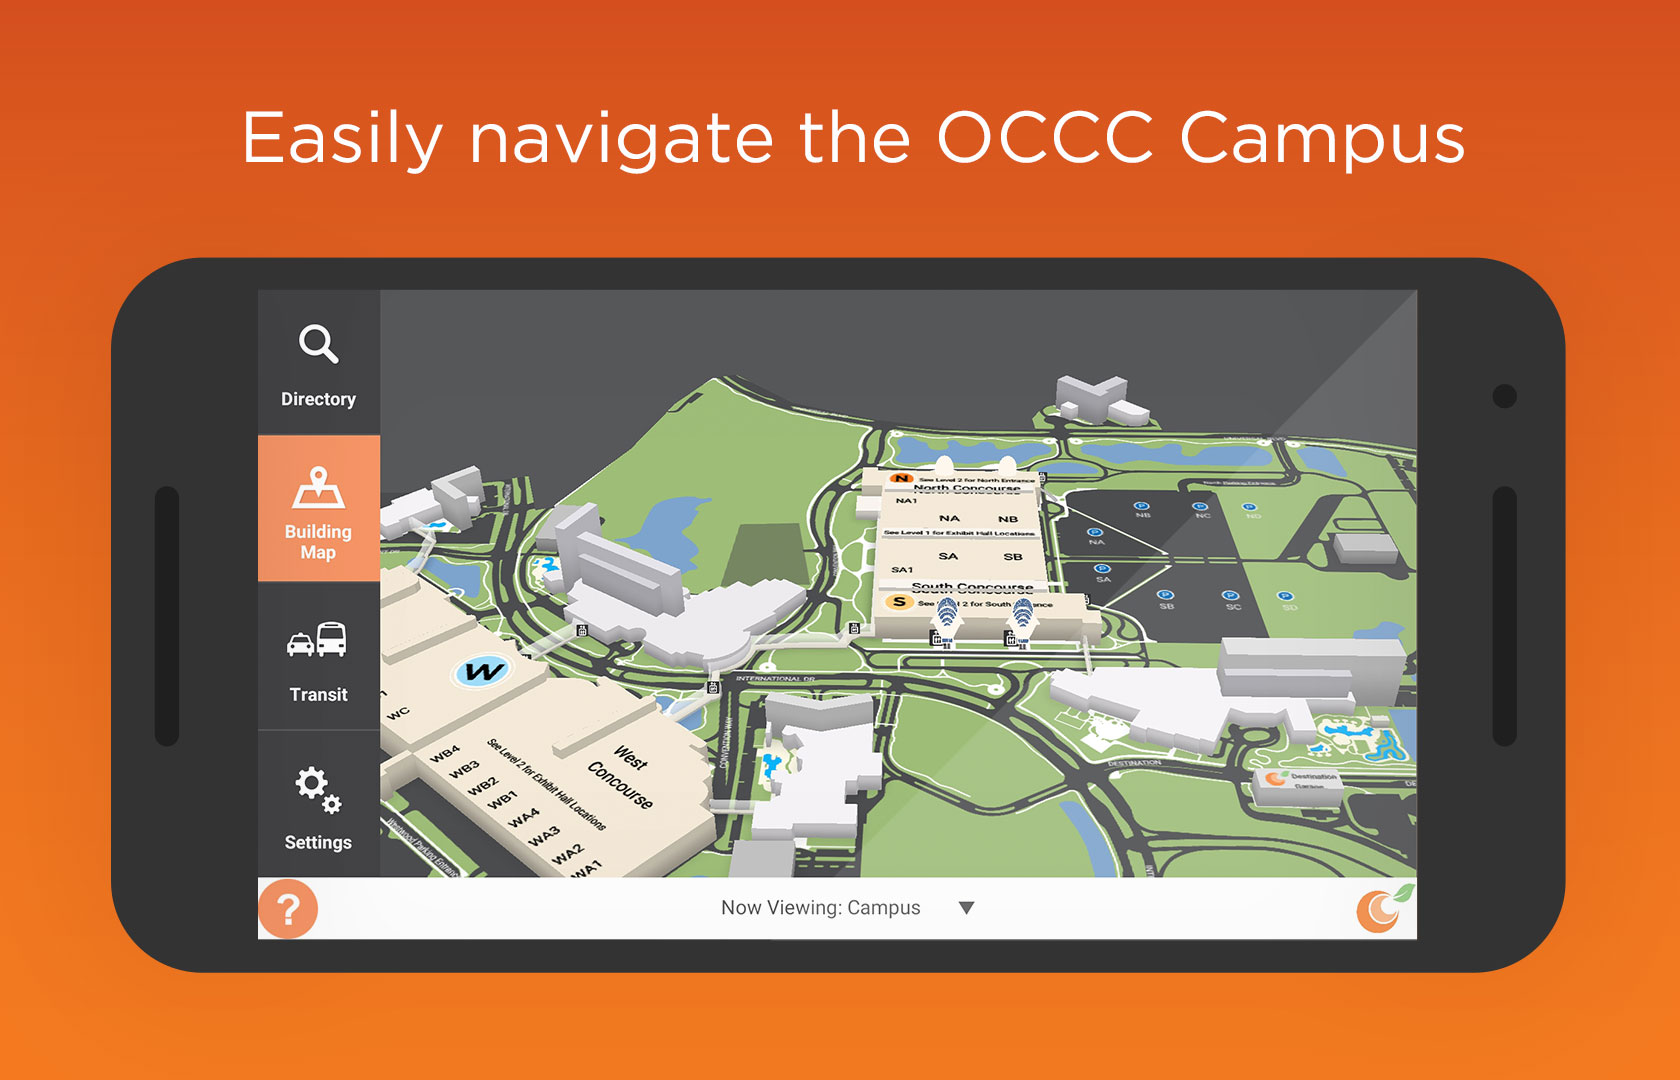 Easily navigate the OCCC Campus